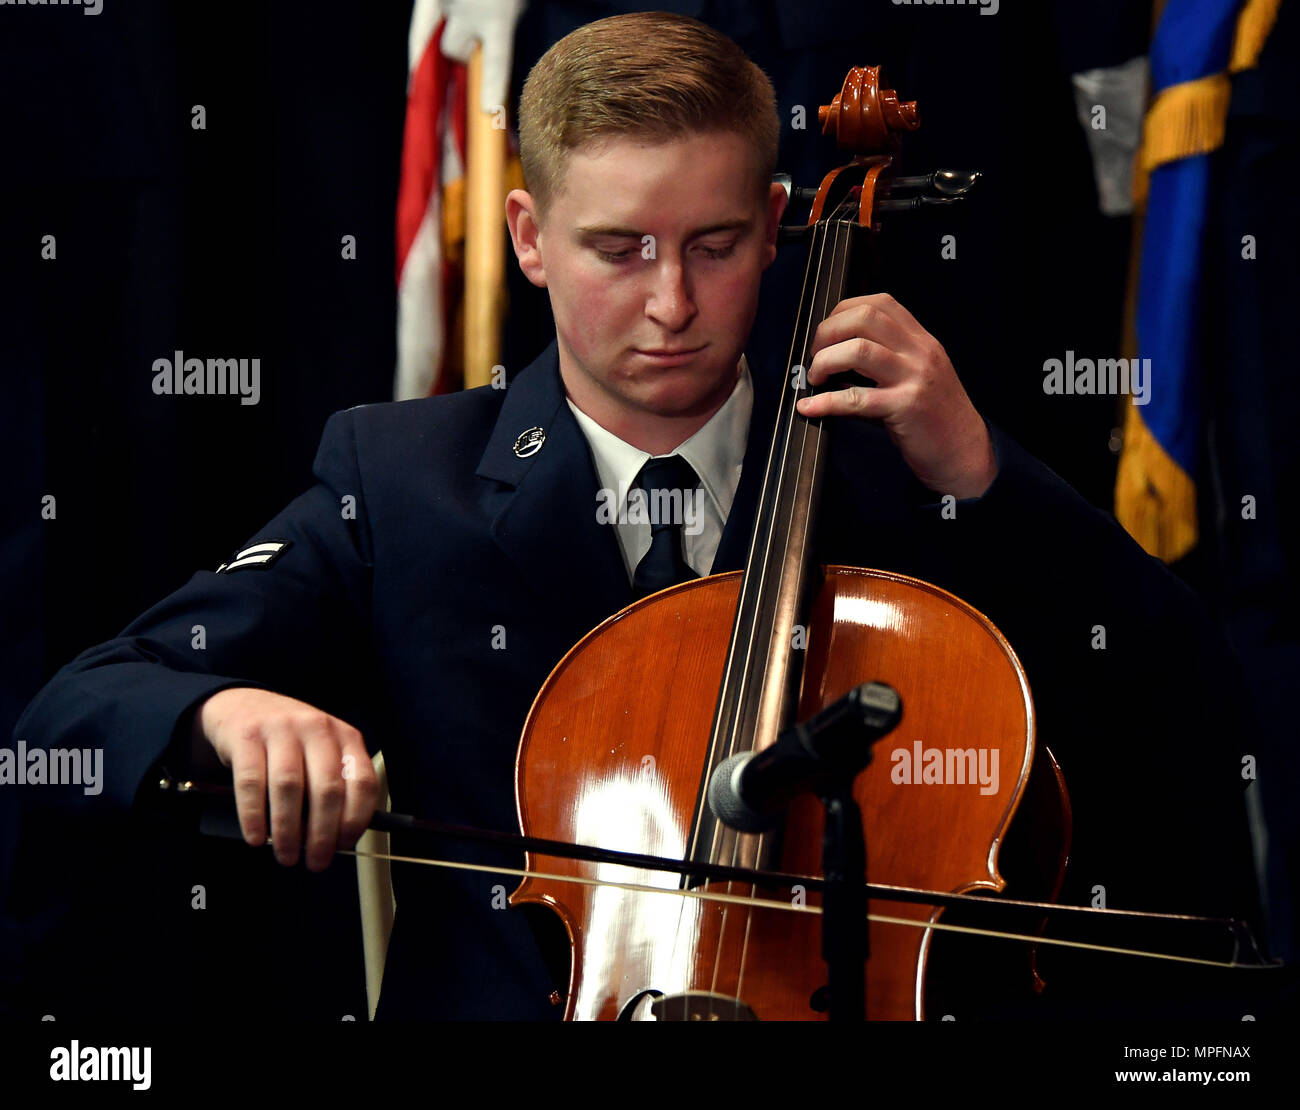 An Airman assigned to the 432nd Wing/432nd Air Expeditionary Wing performs the National Anthem for the 432nd Wing Annual Awards Banquet Feb. 11, 2017, at Nellis Air Force Base, Nev. The ceremony highlighted nominated Airmen and civilians who performed highly in their respected fields. (U.S. Air Force photo/Airman 1st Class James Thompson) - Stock Image